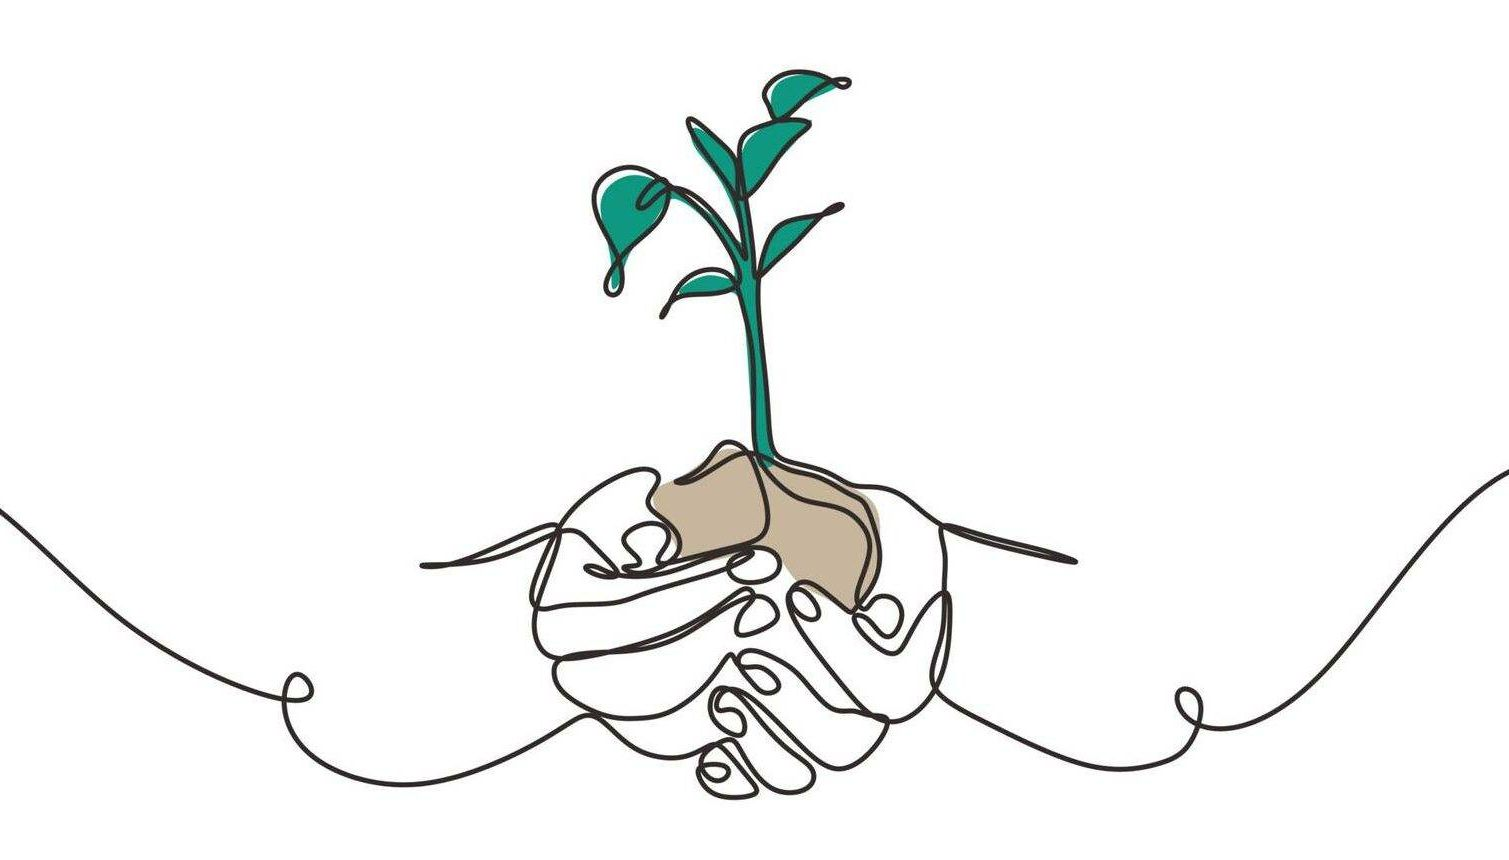 Trauma, post-traumatic growth, Rewire, PBS, Continuous one line drawing of plant in hand. Hands holding nature sign and symbol vector illustration. Minimalism design and simplicity sketch hand drawn.